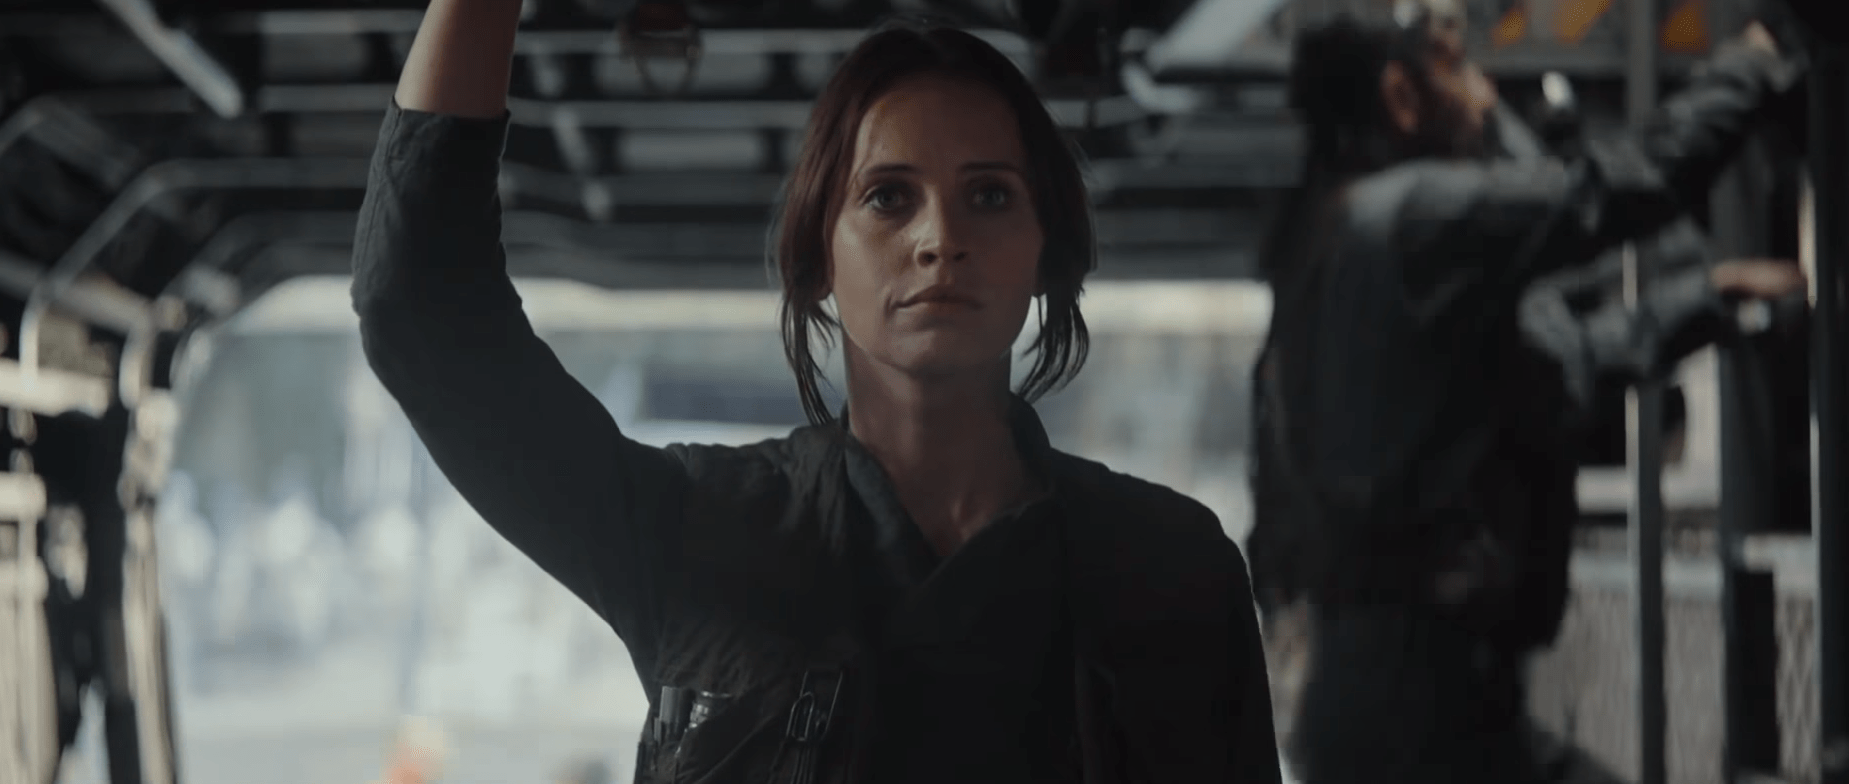 Jyn Erso's dad has been up to no good (Picture: Lucasfilm)